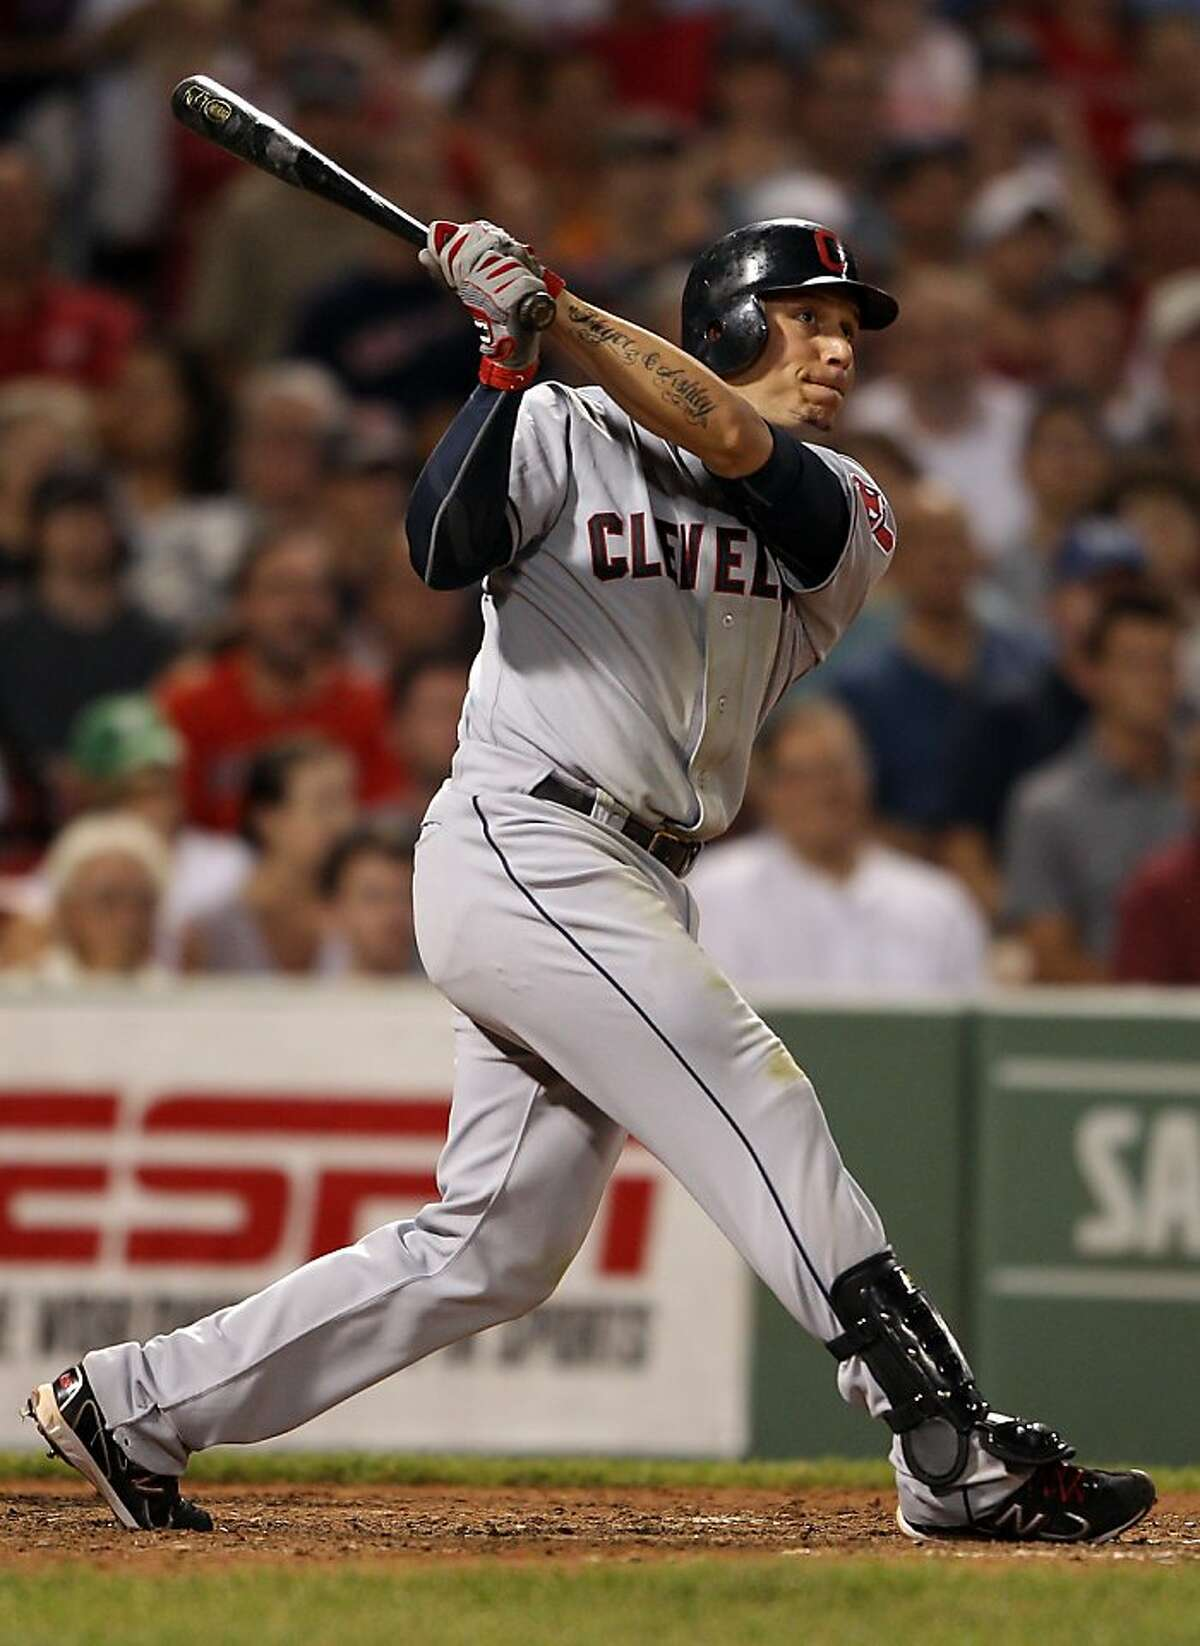 BOSTON, MA - AUGUST 01: Asdrubal Cabrera #13 of the Cleveland Indians watches his hit in the eighth inning against the Boston Red Sox on August 1, 2011 at Fenway Park in Boston, Massachusetts. The hit was ruled a two run homer after an official review.